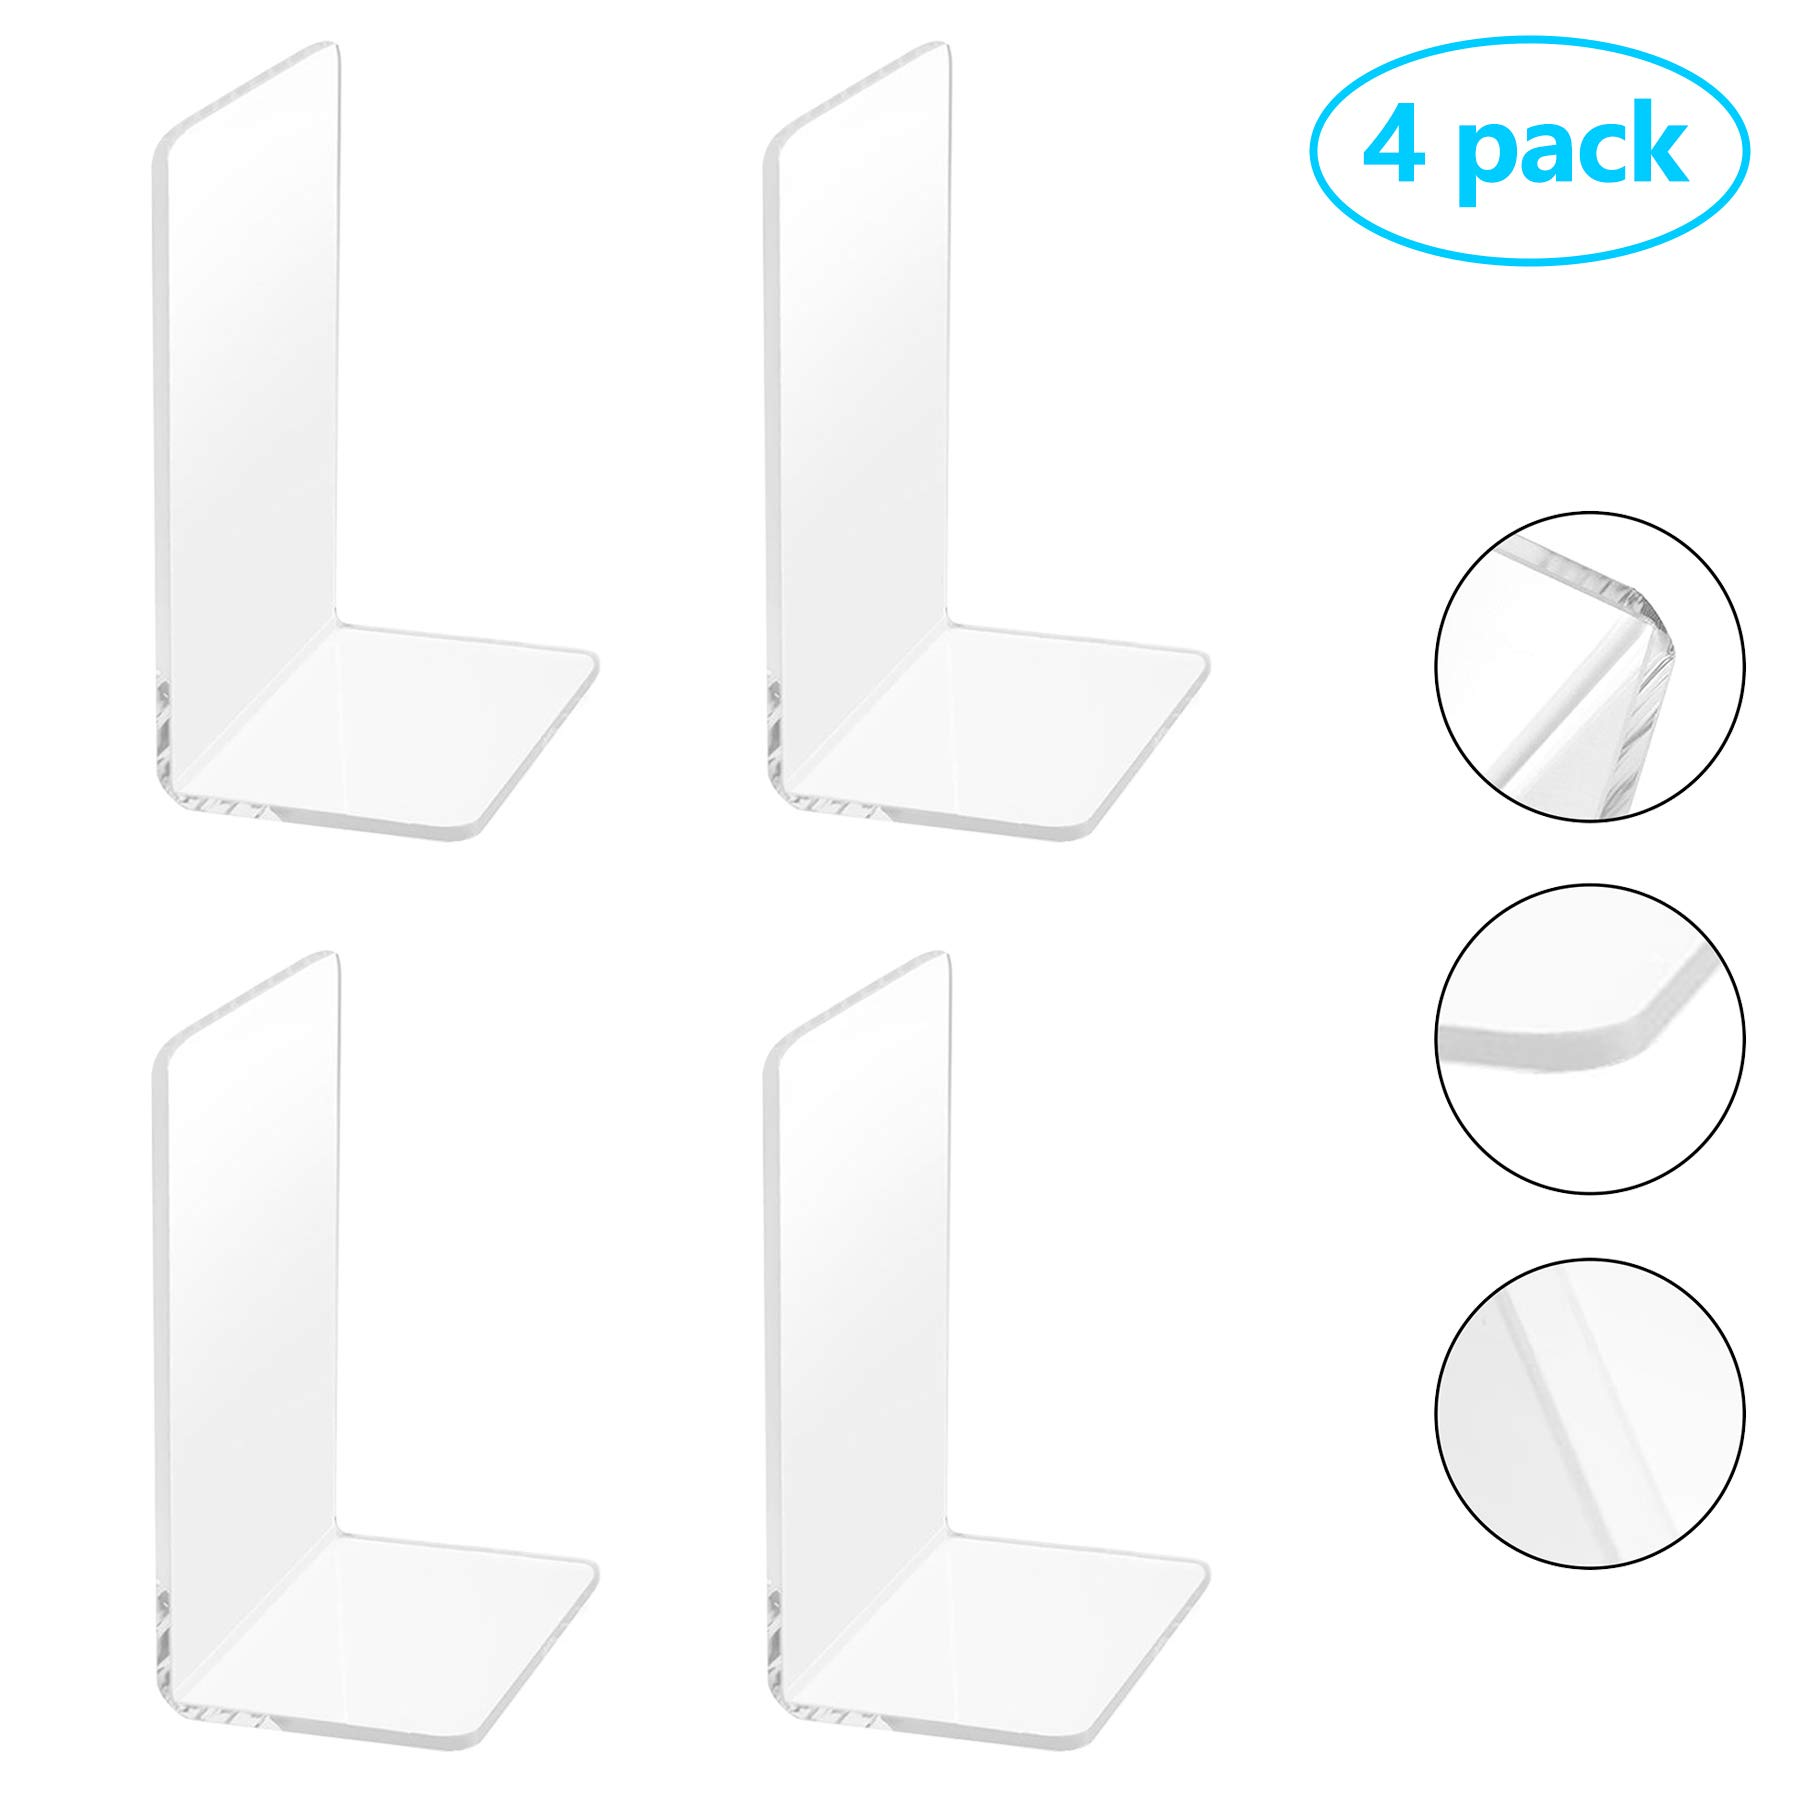 2 Pairs/4 Pieces Plastic Acrylic Bookends with Round Corner, Clear Bookends for Books, Movies, DVDs, Magazines, Perfect for Bedroom Bookshelf Library School Office, Transparent, 7.3 x4.8 inch by Frontoper